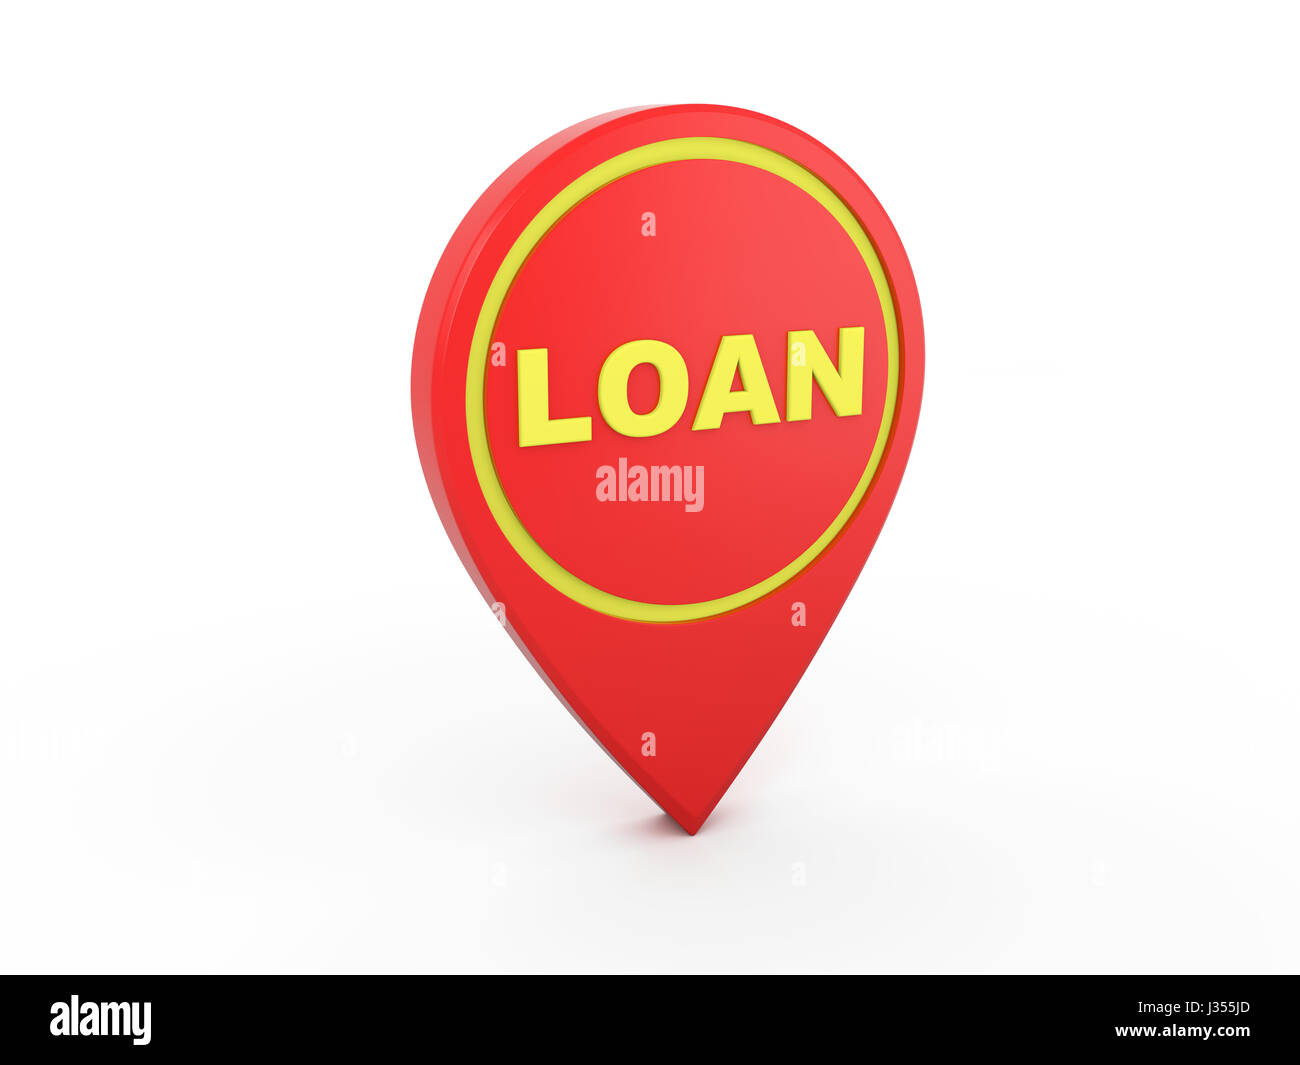 Instant cash payday loans photo 4